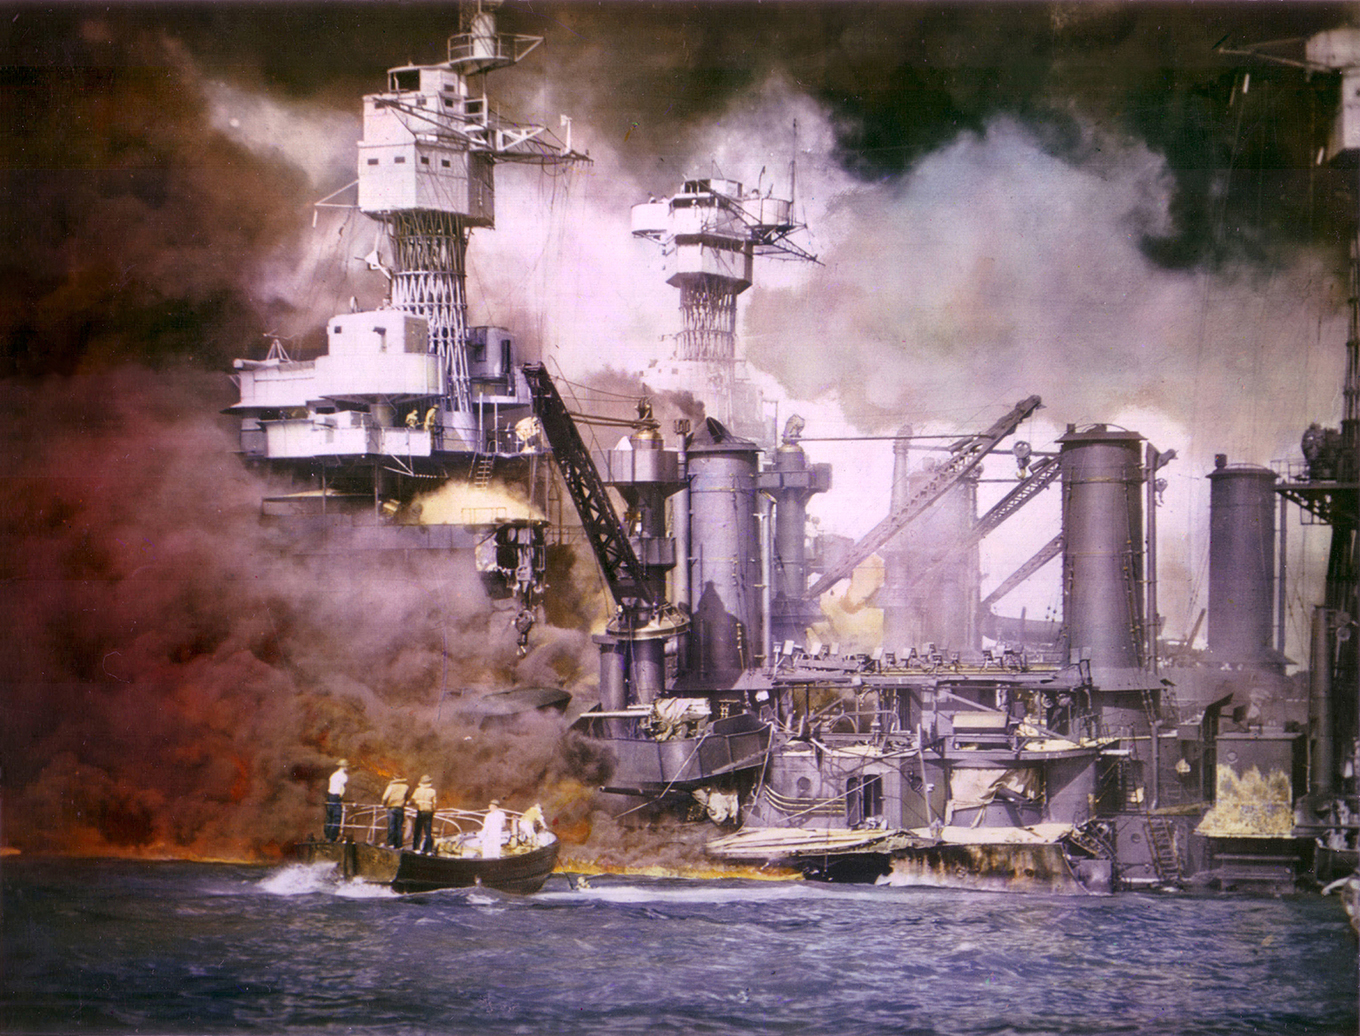 an account of events leading up to the pearl harbor attack in day of infamy Pearl harbor day occurs on december 7 th every year and is a time to remember one of the most significant events that occurred in us and world history, the japanese surprise attack on hawaii on december 7 th, 1941, the japanese launched two waves of aircraft striking american forces based in / around pearl harbor in the (at the time.